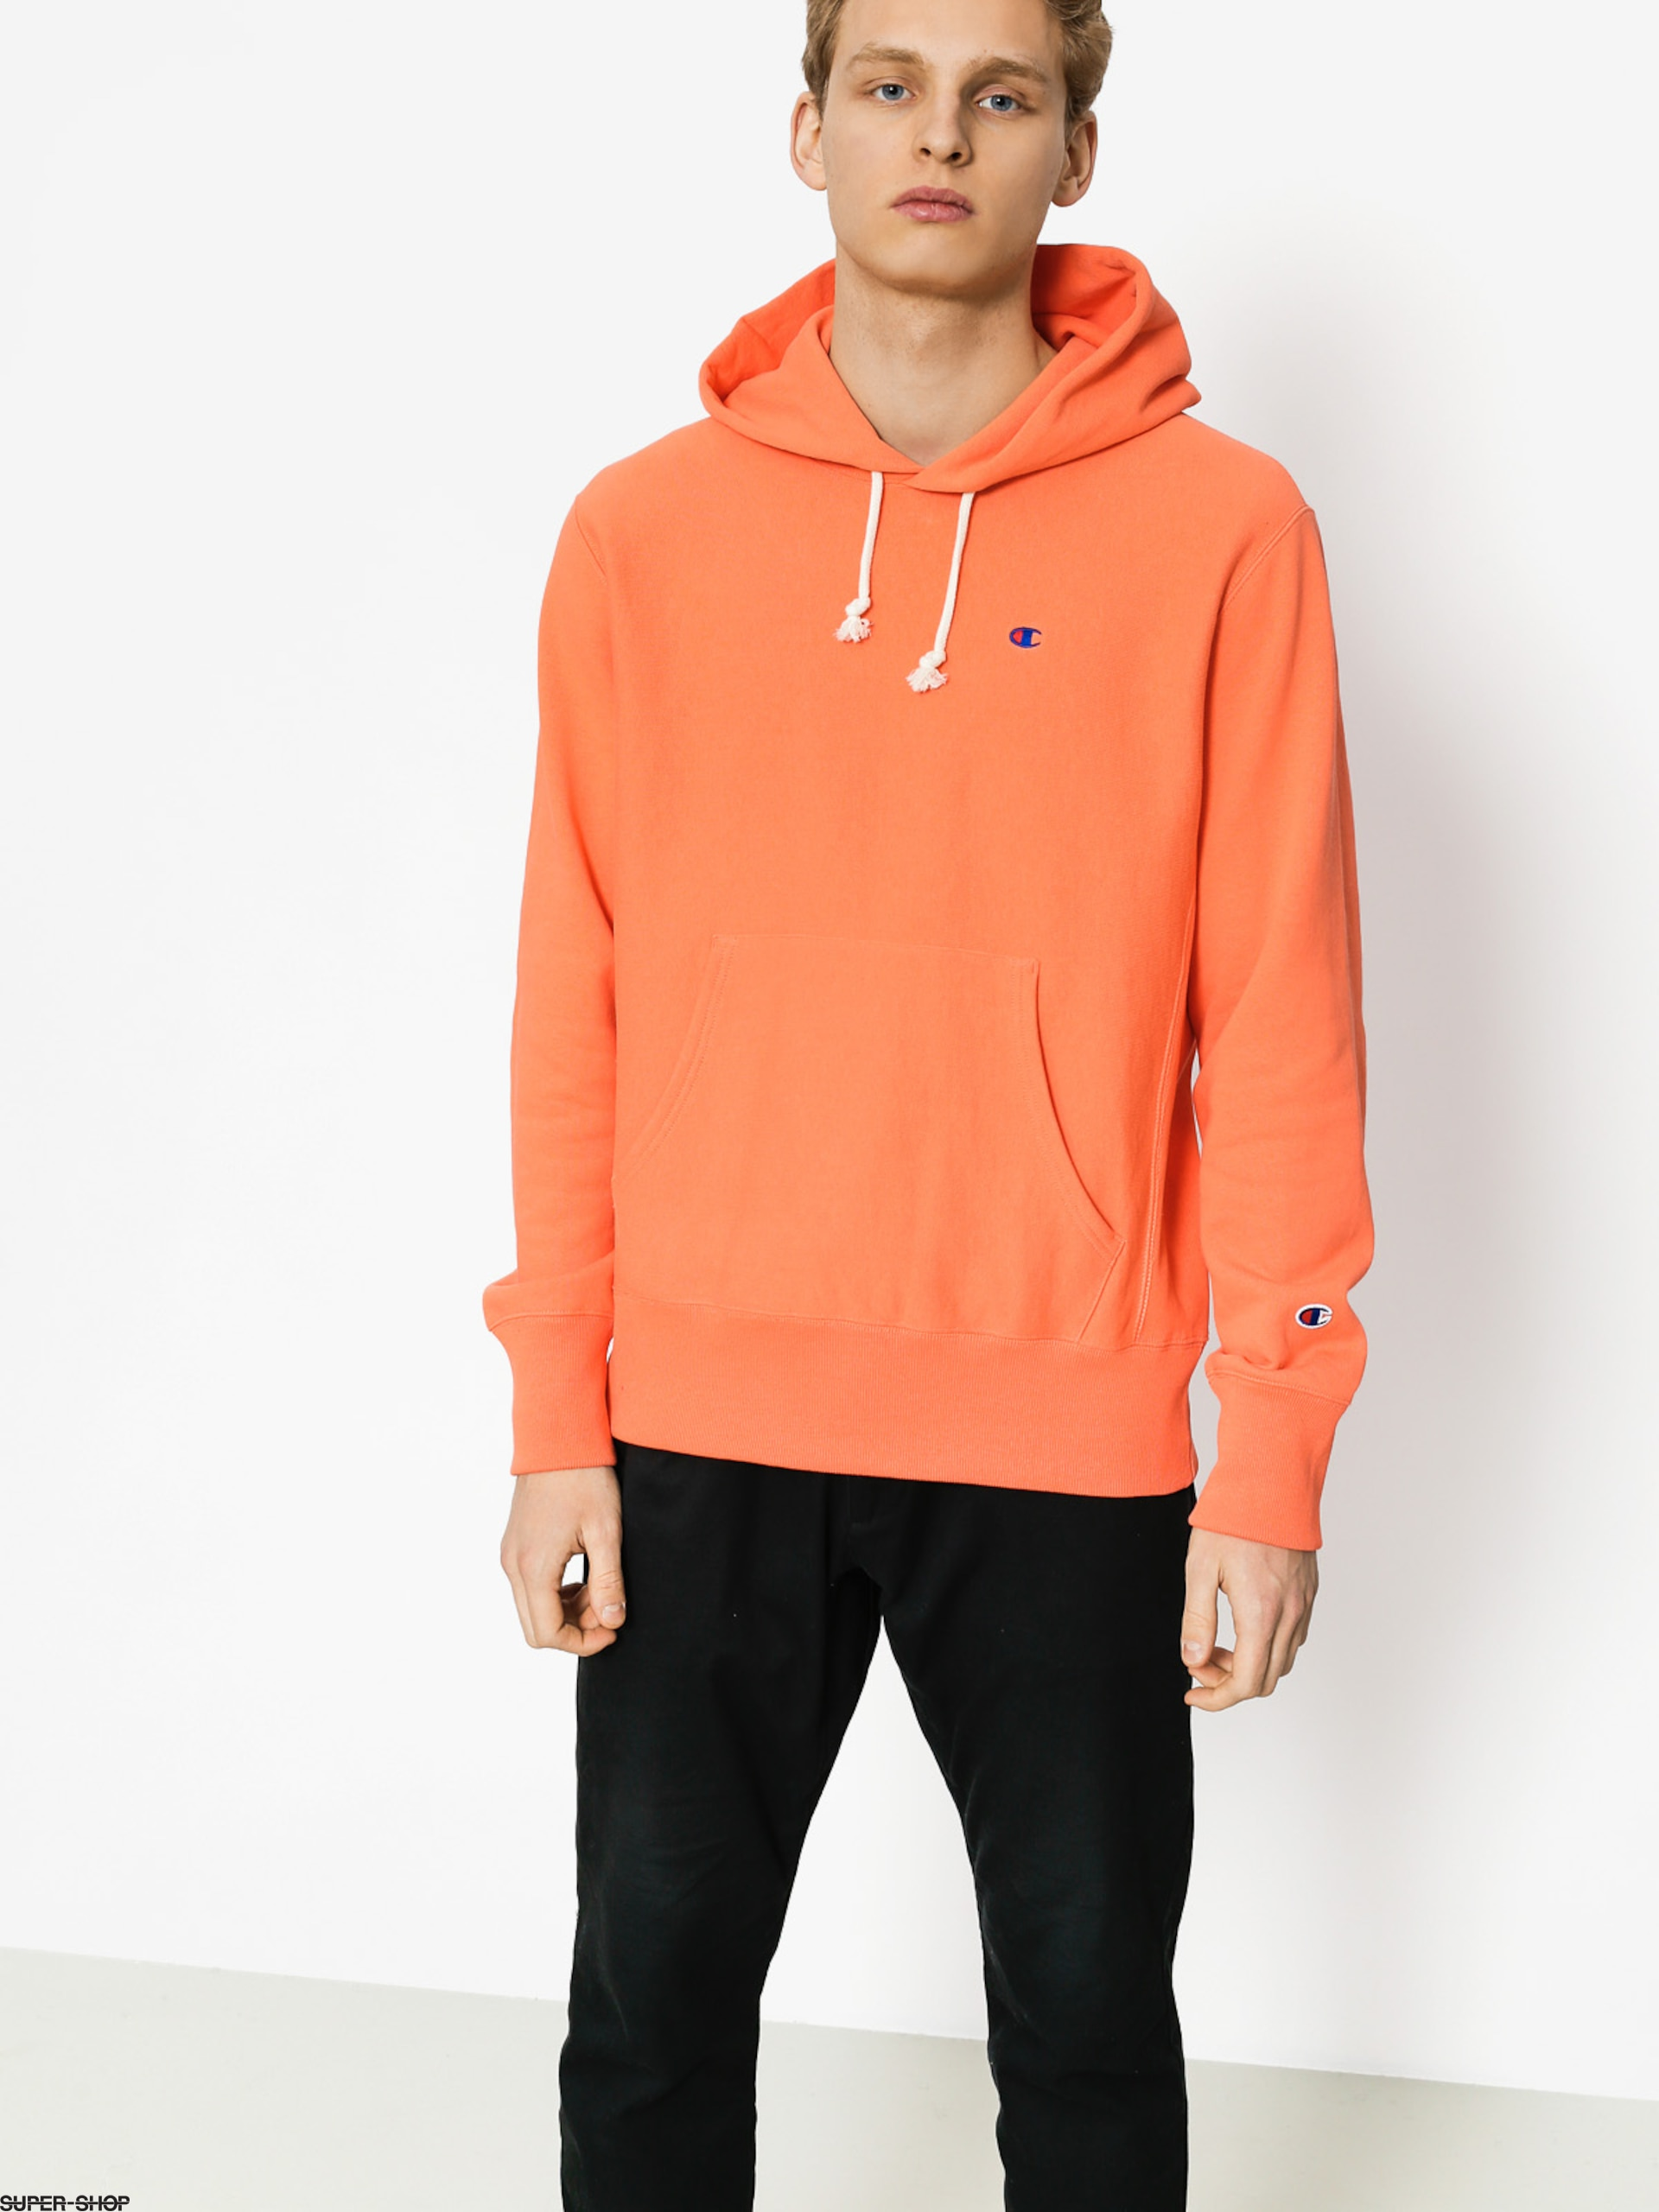 Champion Hoody Reverse Weave Hooded Sweatshirt HD (psm)